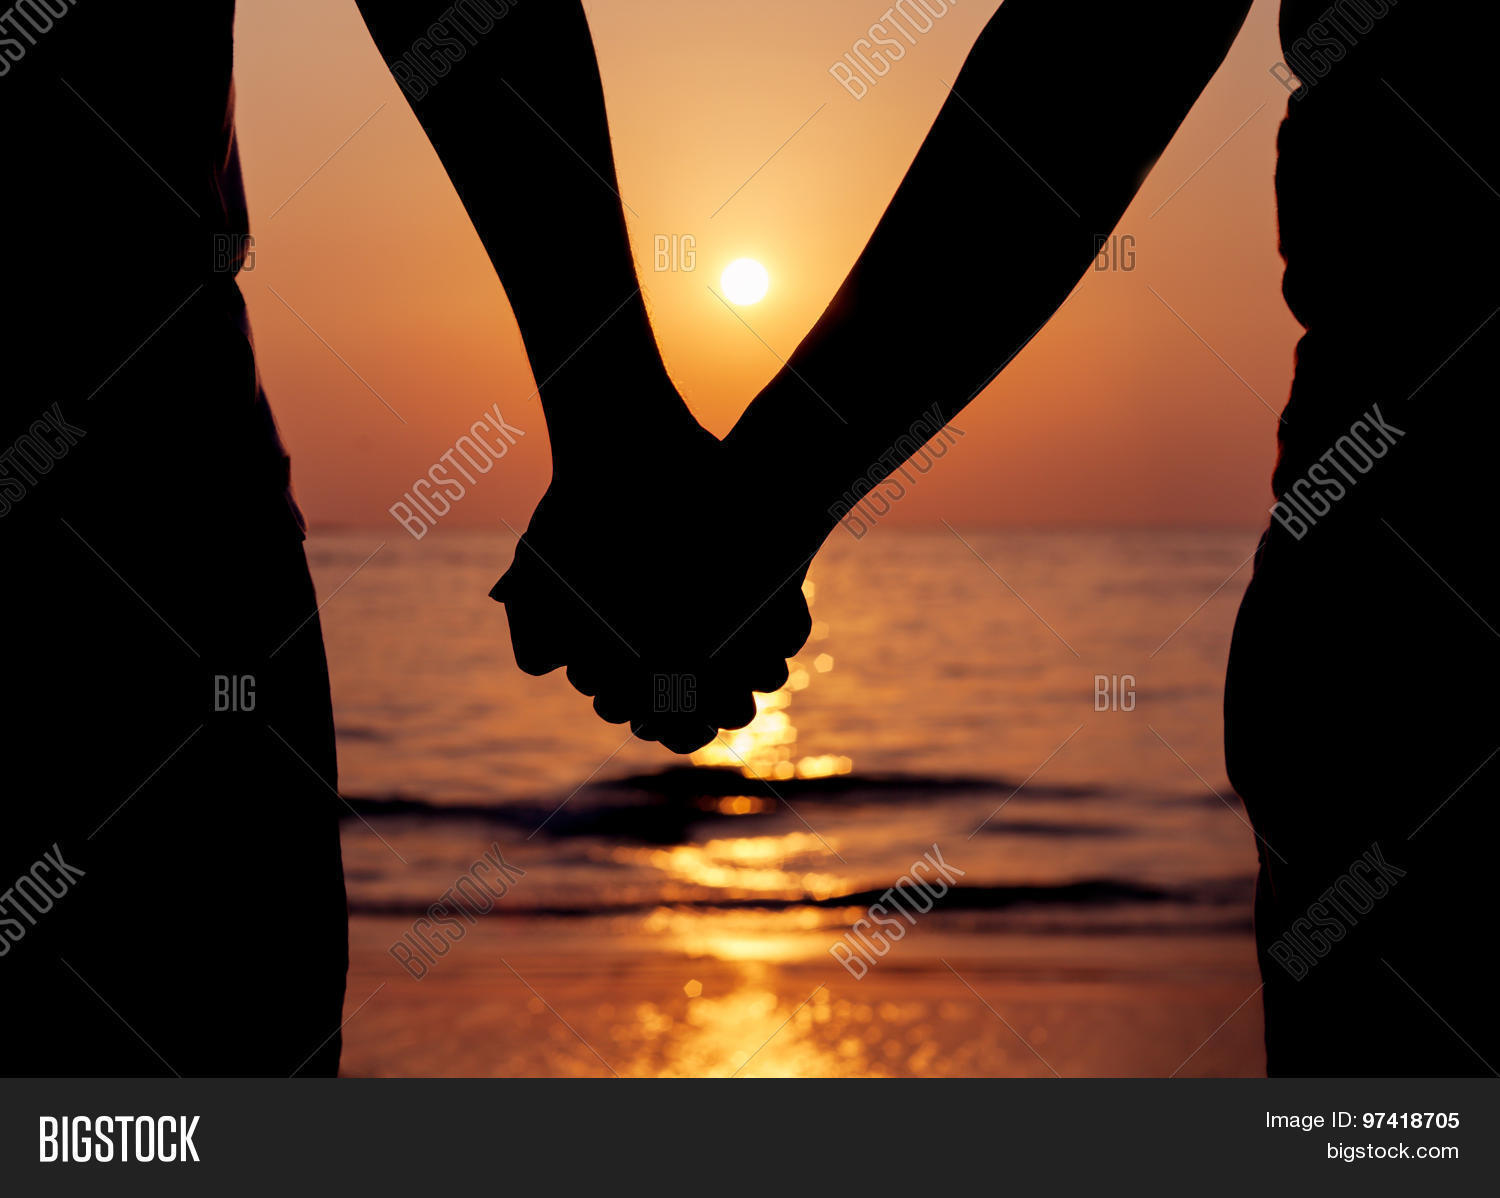 Silhouettes Couples Holding Hands Image  for Couple Holding Hands Silhouette Sunset  584dqh